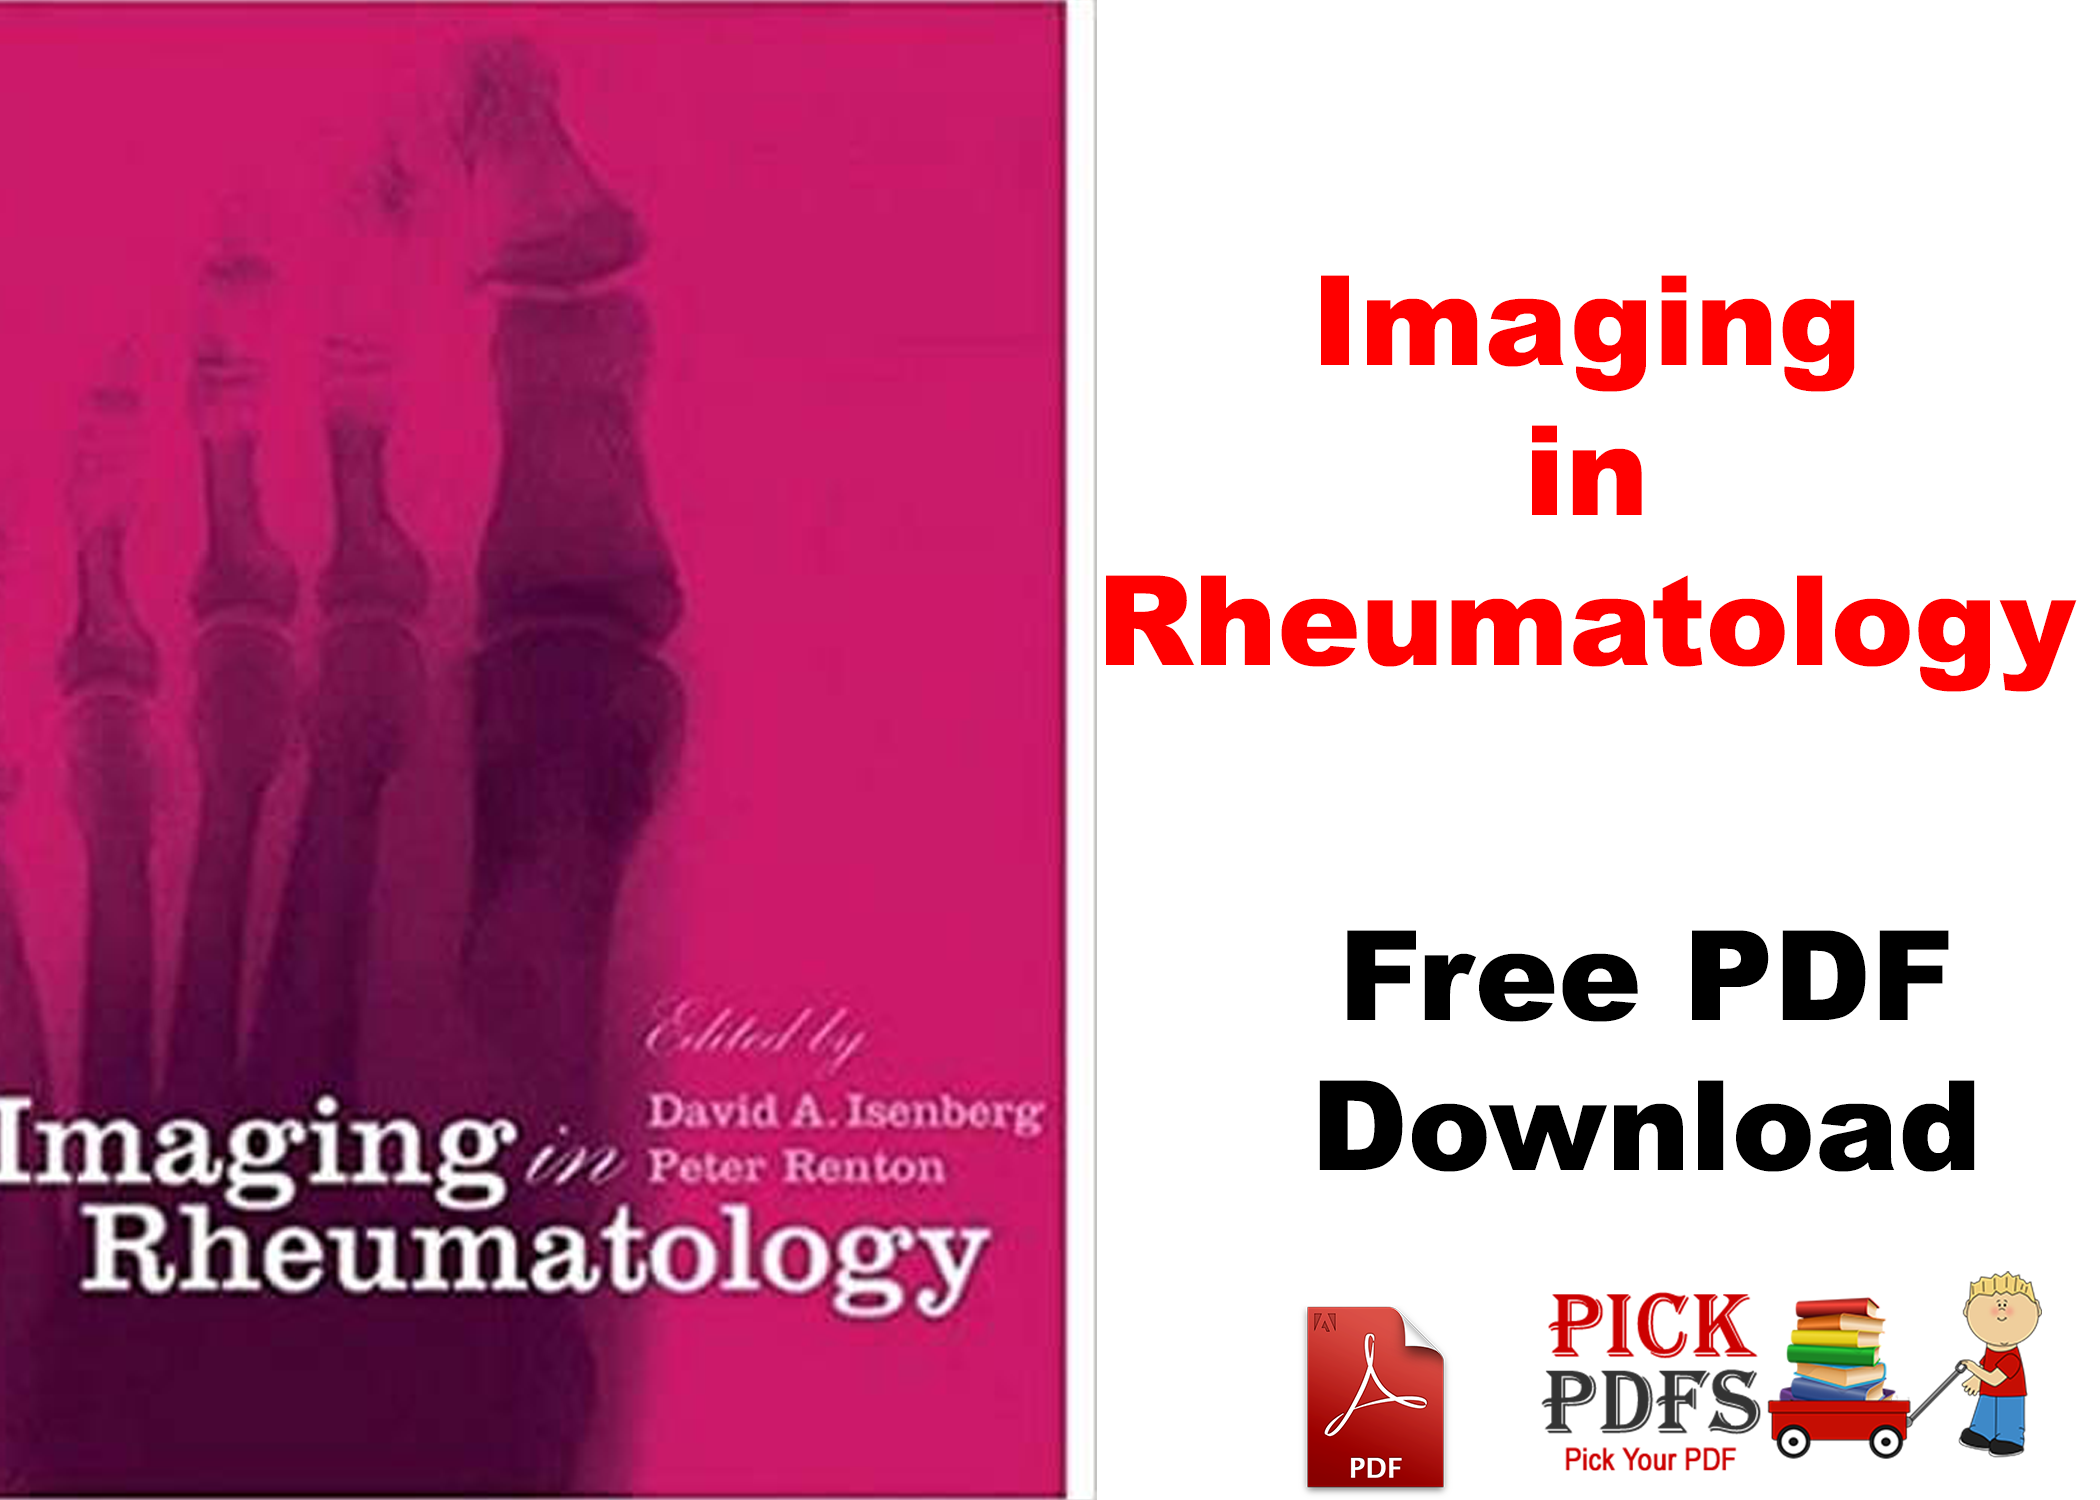 https://pickpdfs.com/imaging-in-rheumatology-book-free-pdf-download-latest-edition/